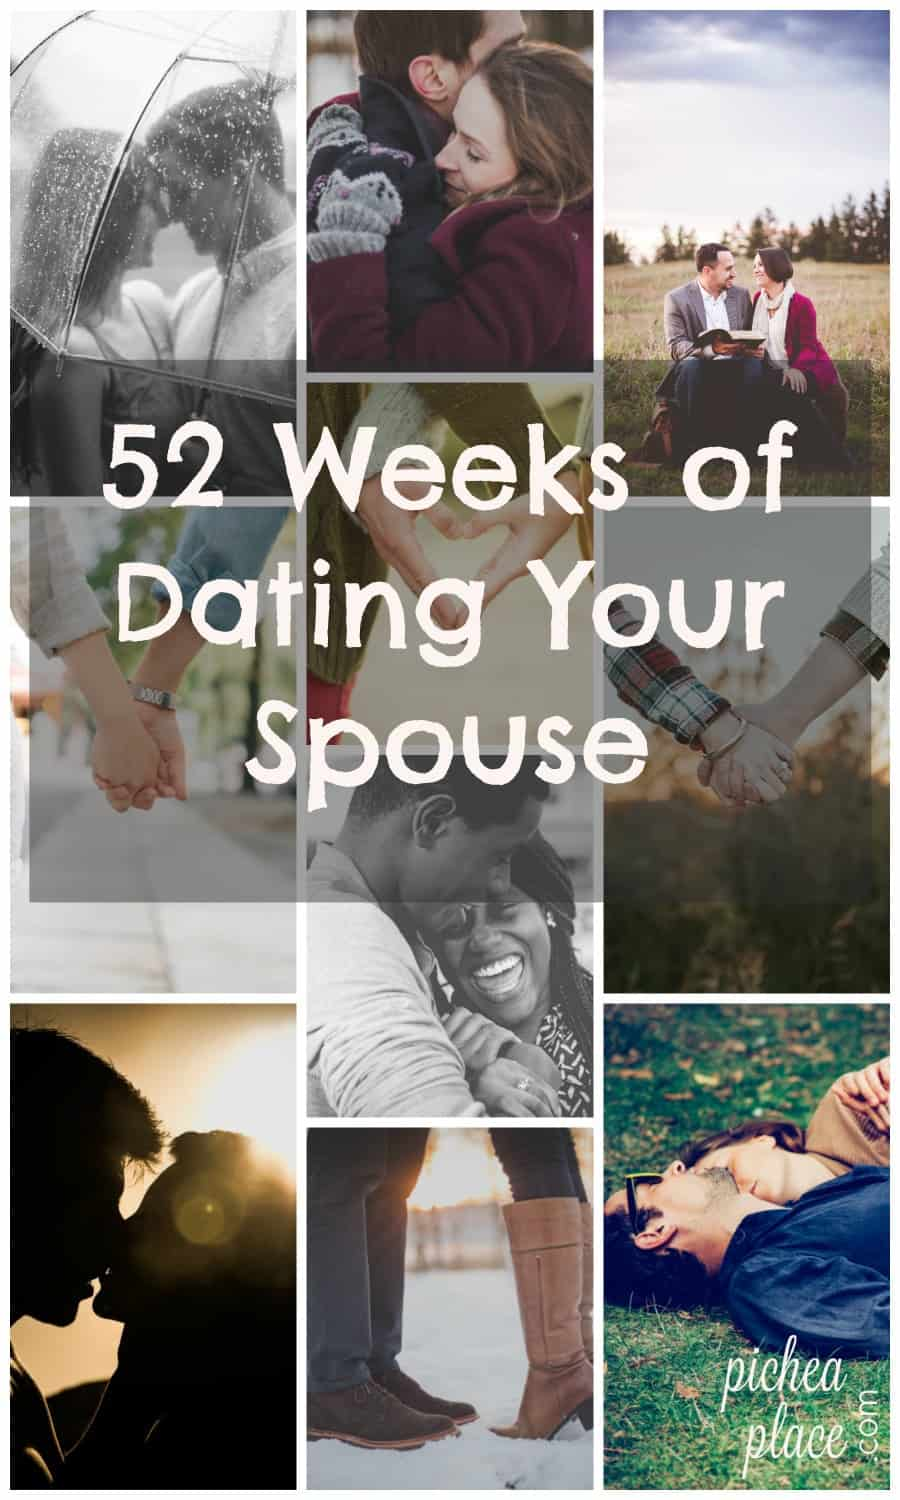 52 weeks of dating your spouse: fun activity date ideas for busy parents